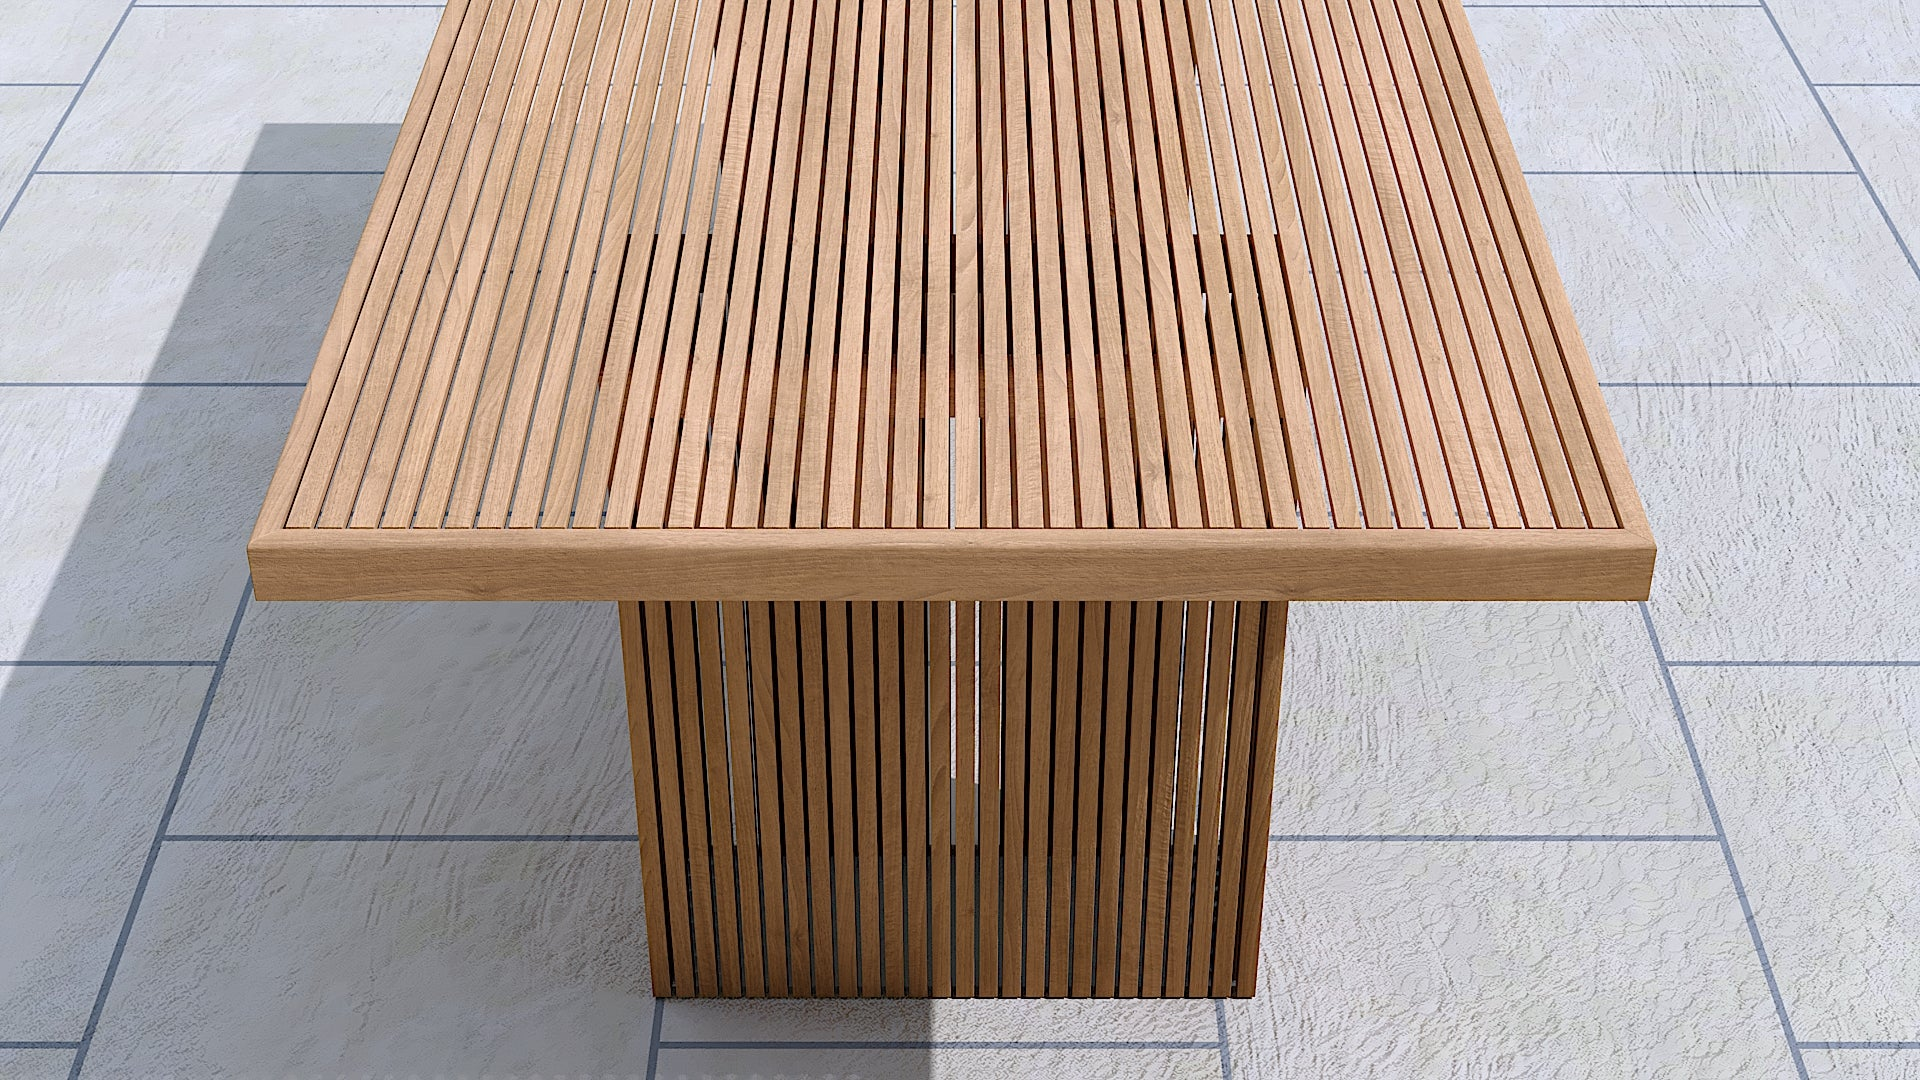 Mayfair teak table close up